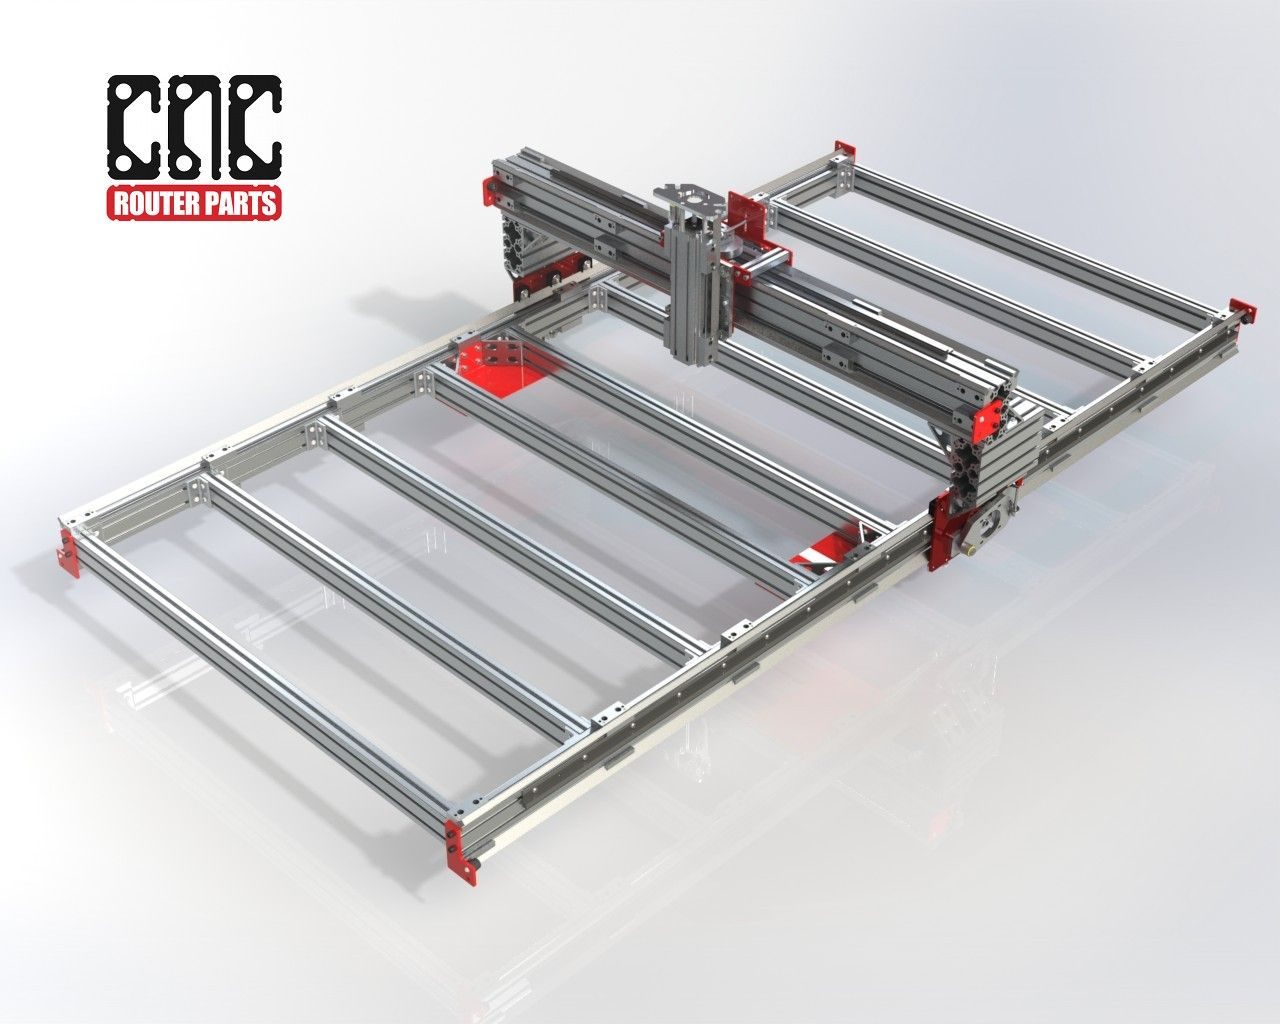 CNC Router Parts PRO4896 an inexpensive version of the